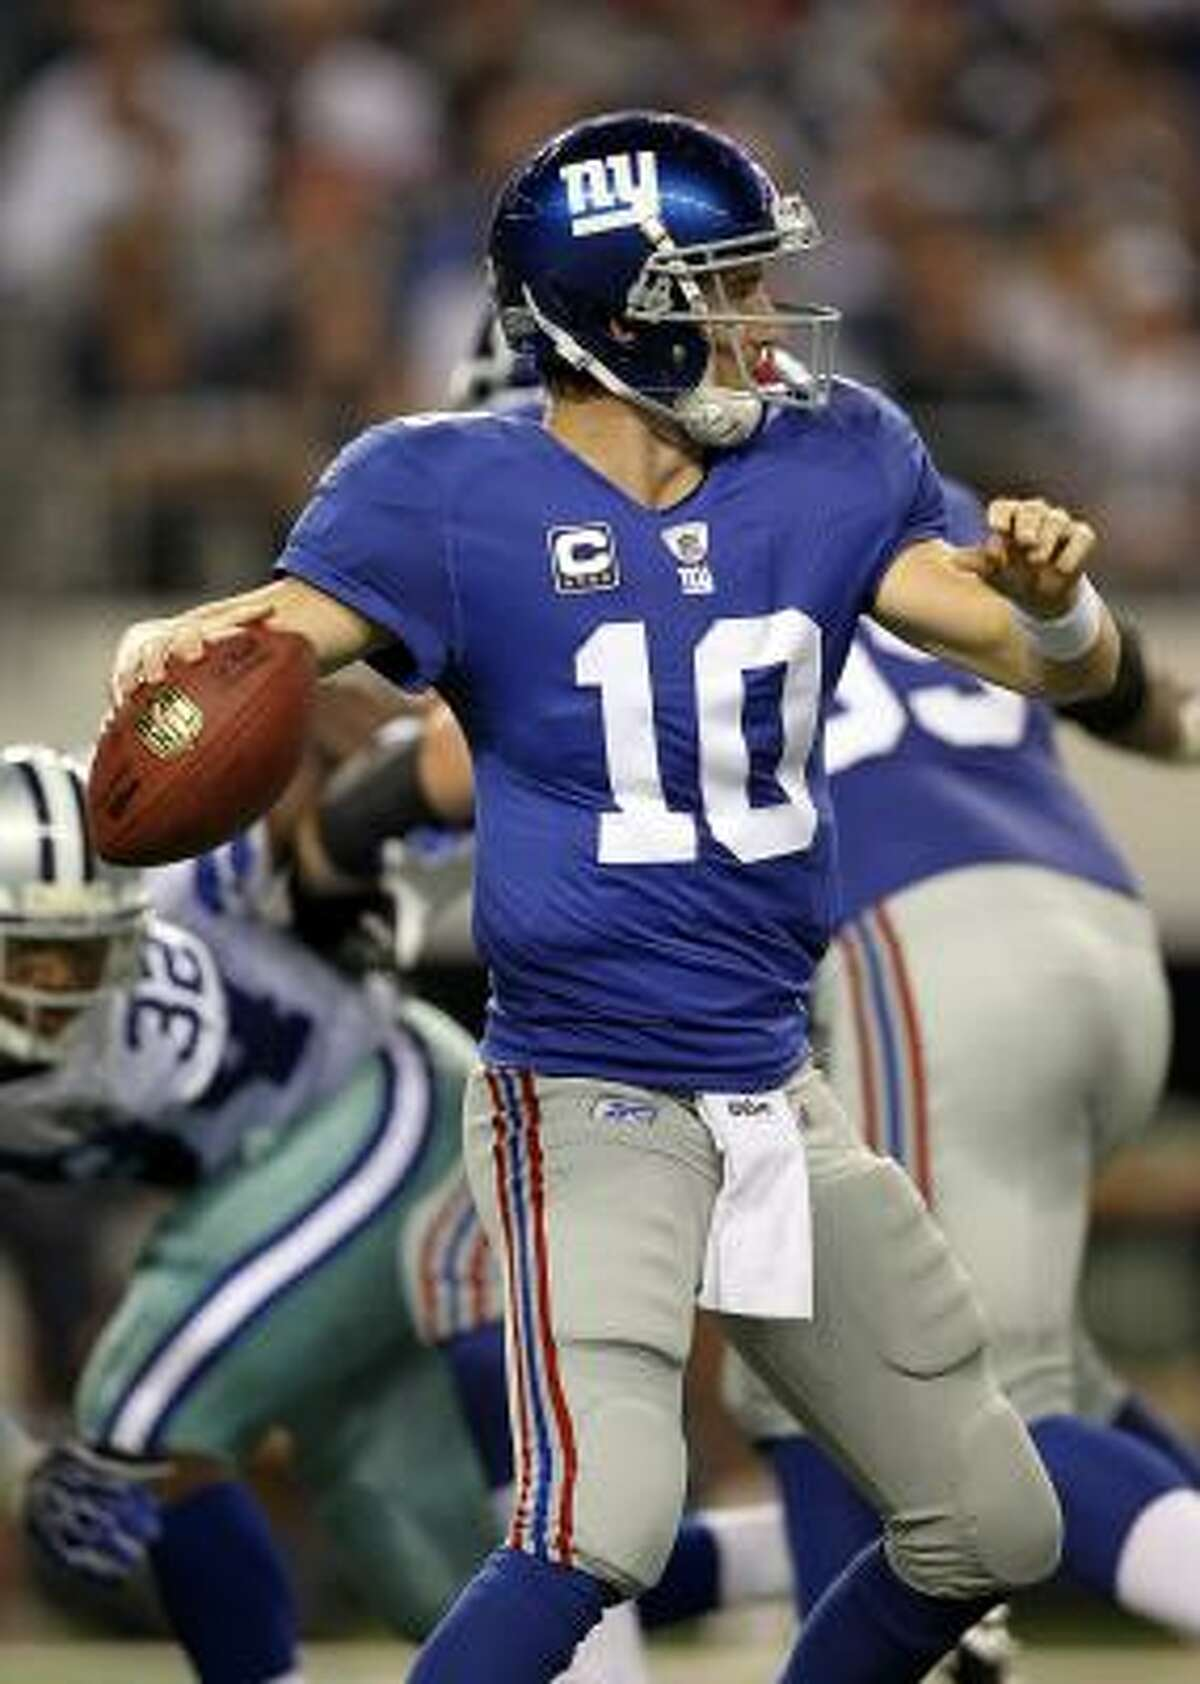 Giants quarterback Eli Manning looks to pass against the Cowboys.